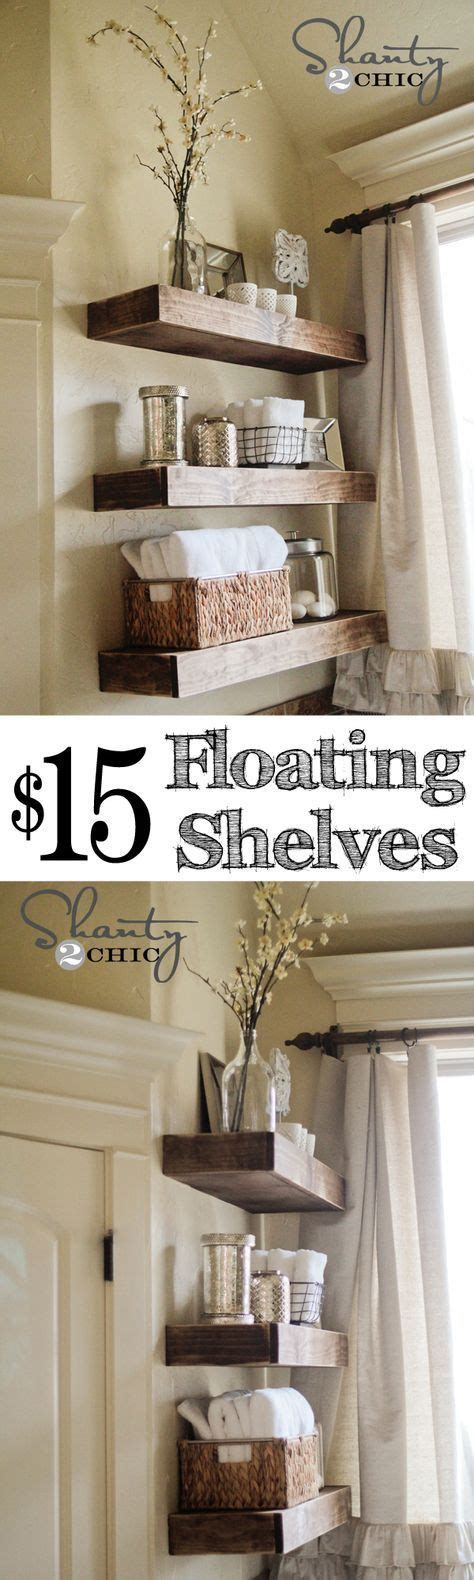 25 best ideas about floating shelves on